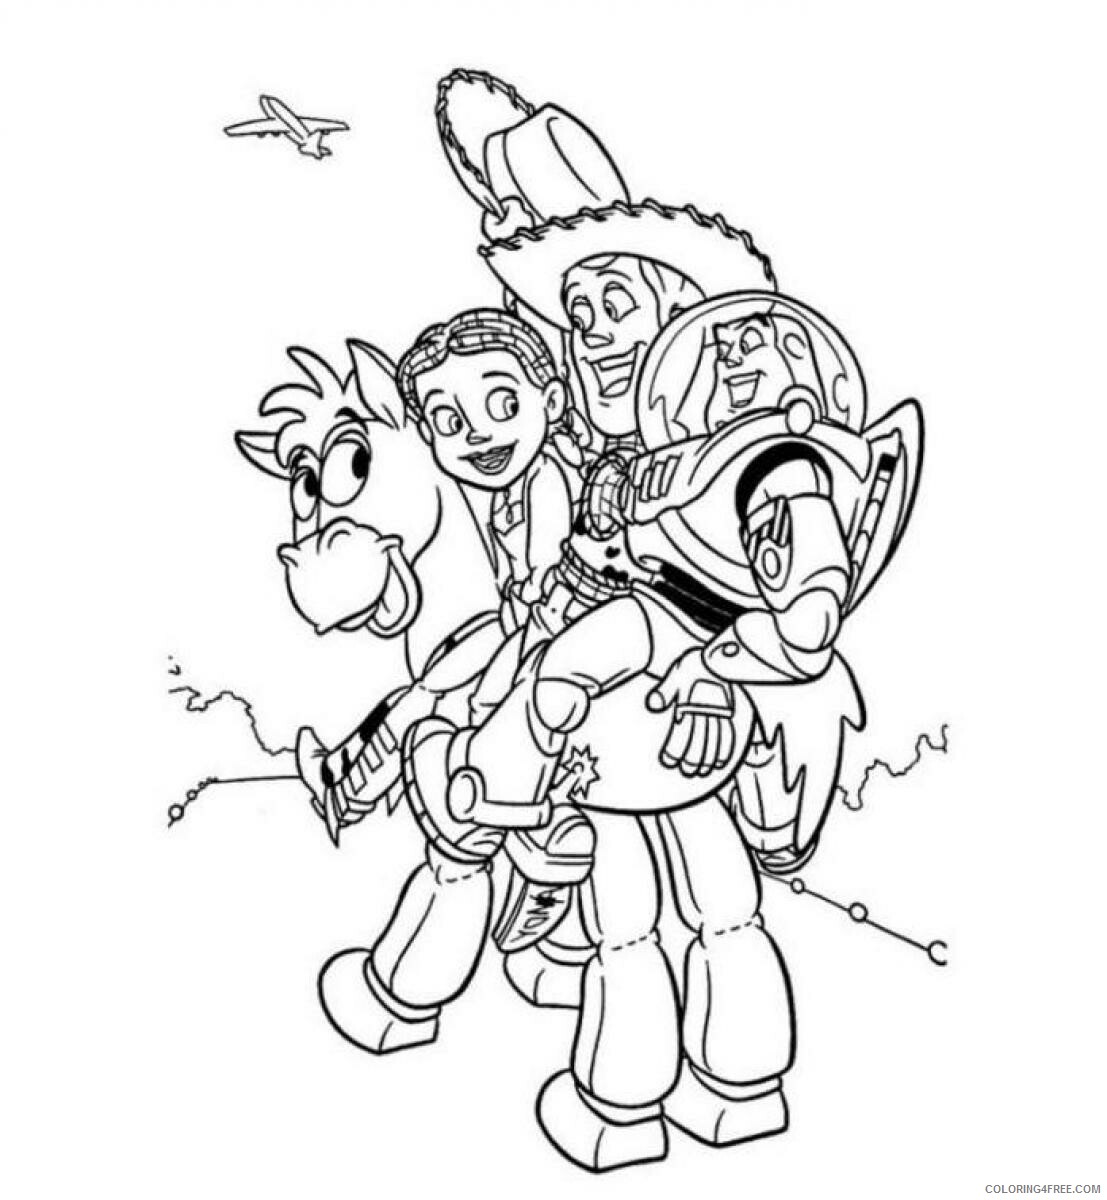 Toy Story Coloring Pages TV Film Toy Story 18 Printable 180180 18 ...